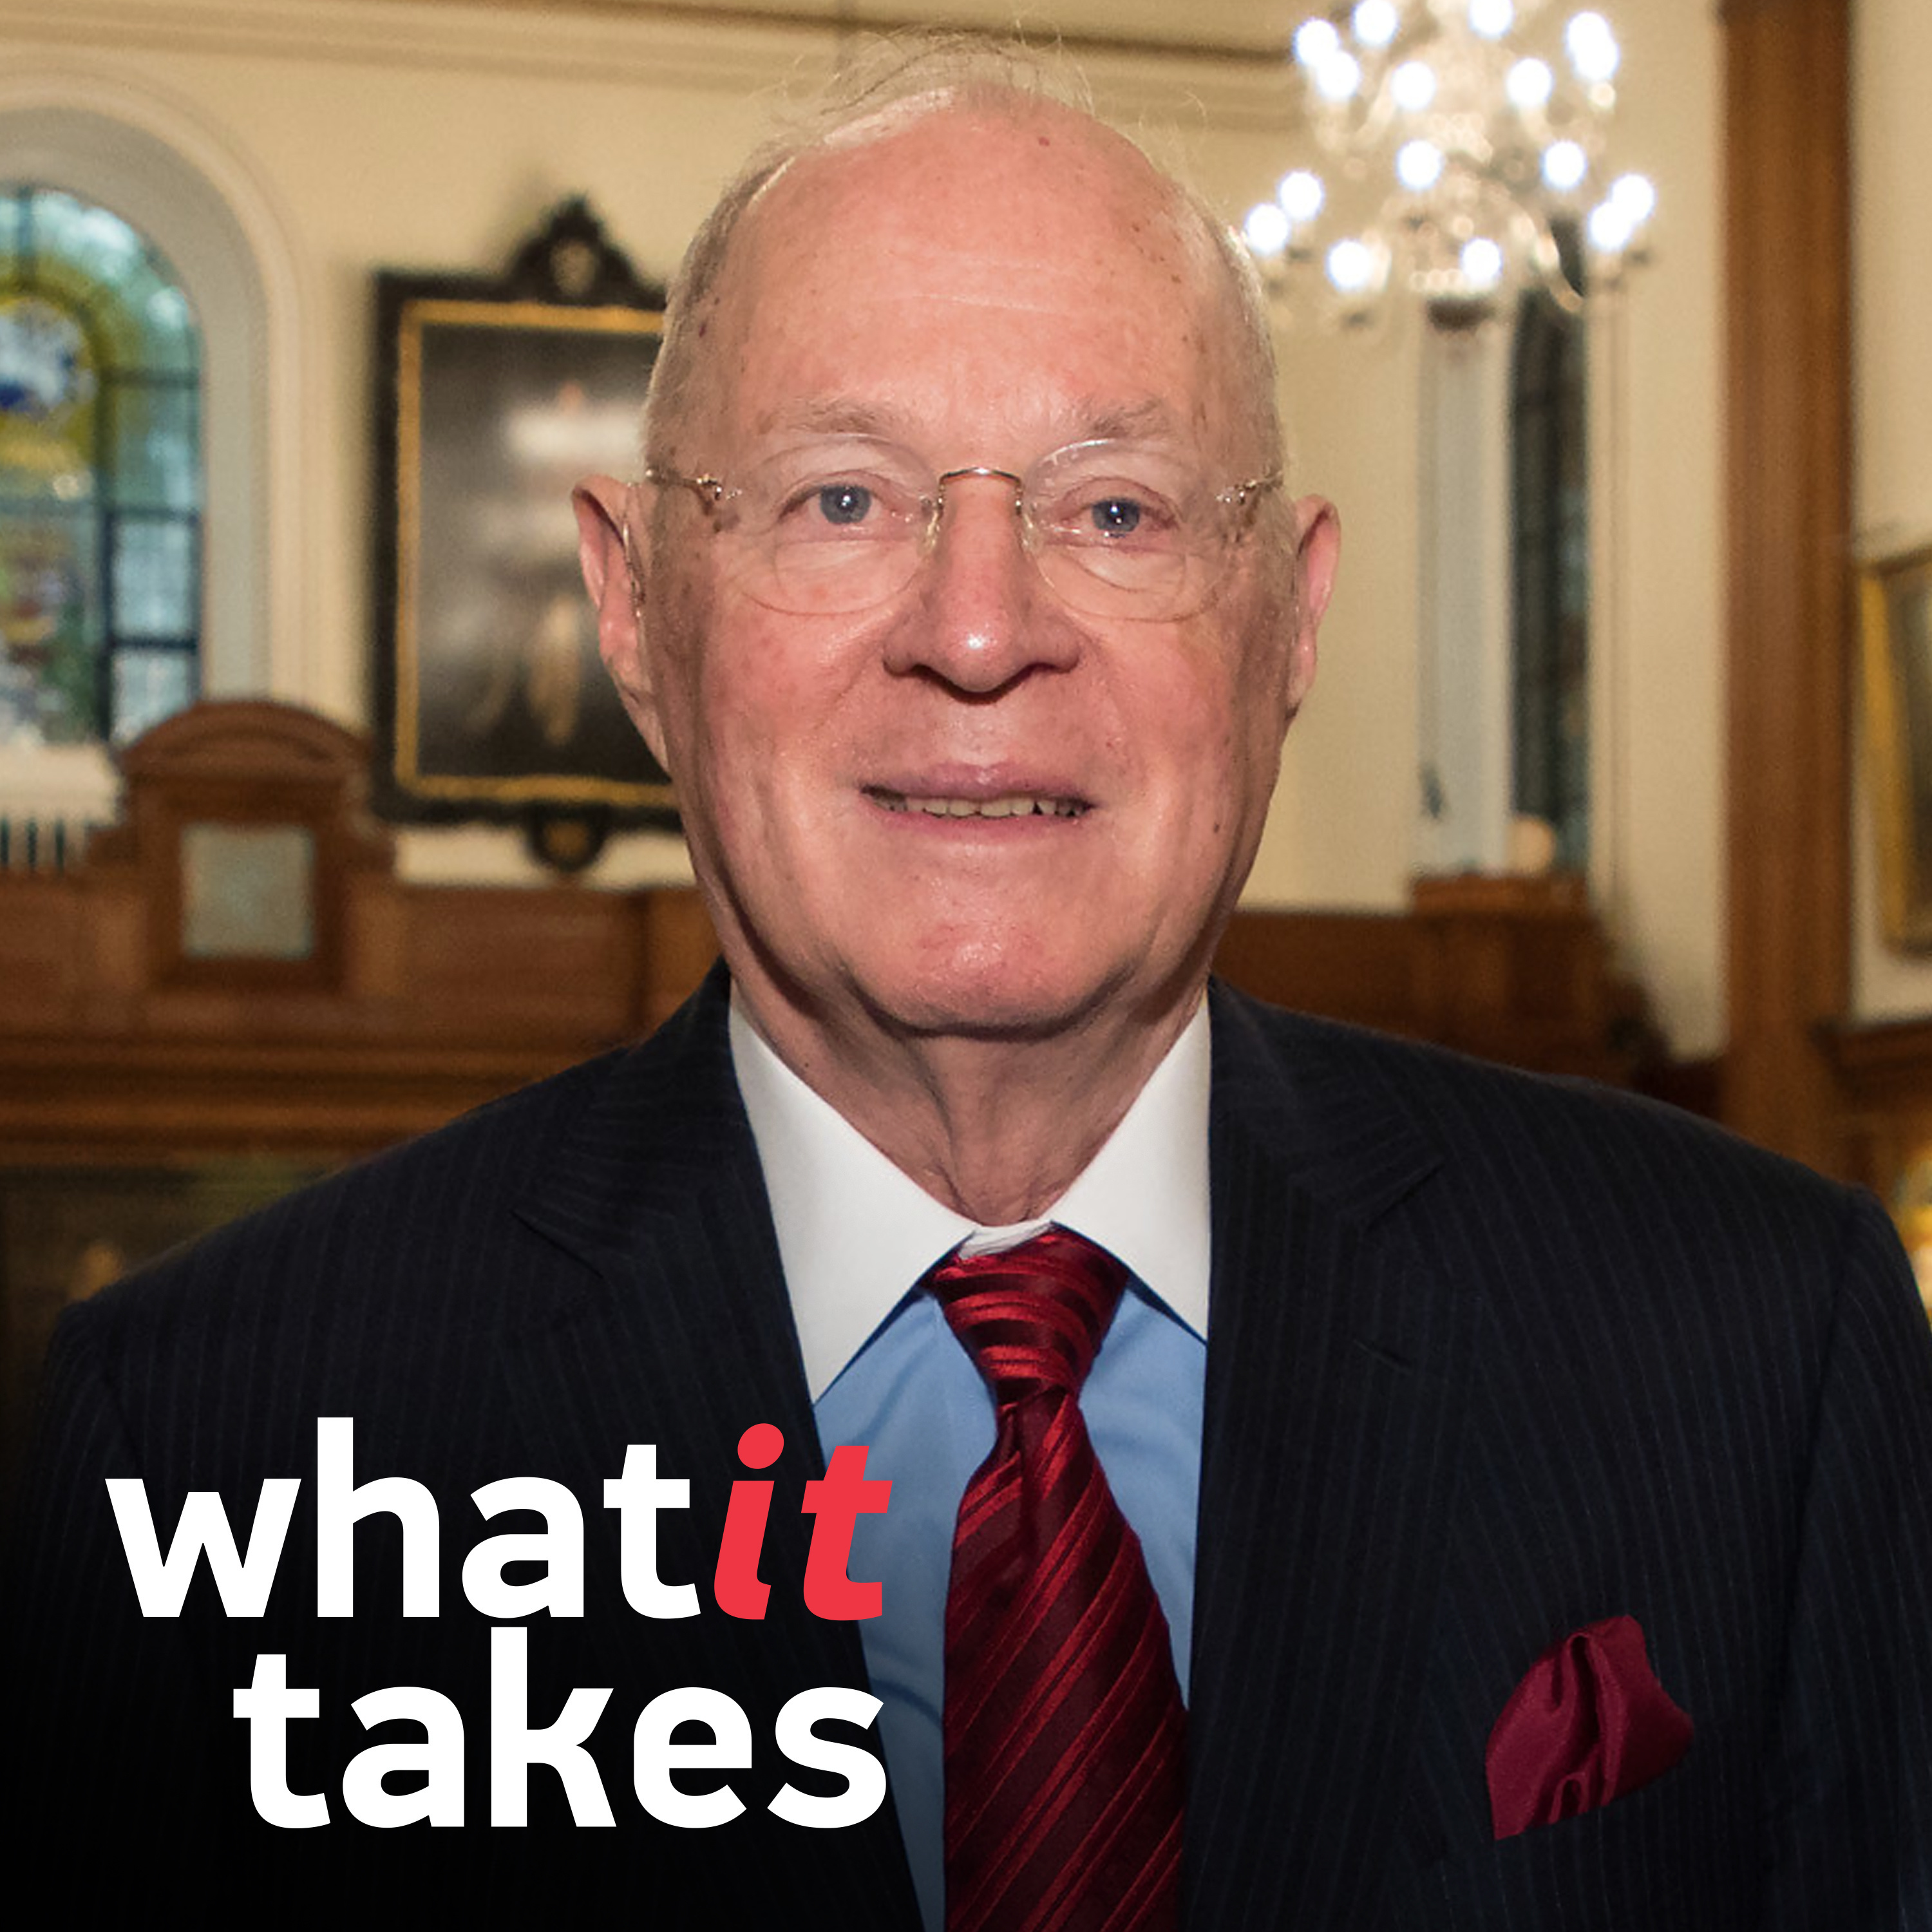 Anthony M Kennedy Principles Of Freedom What It Takes Podcast Podtail